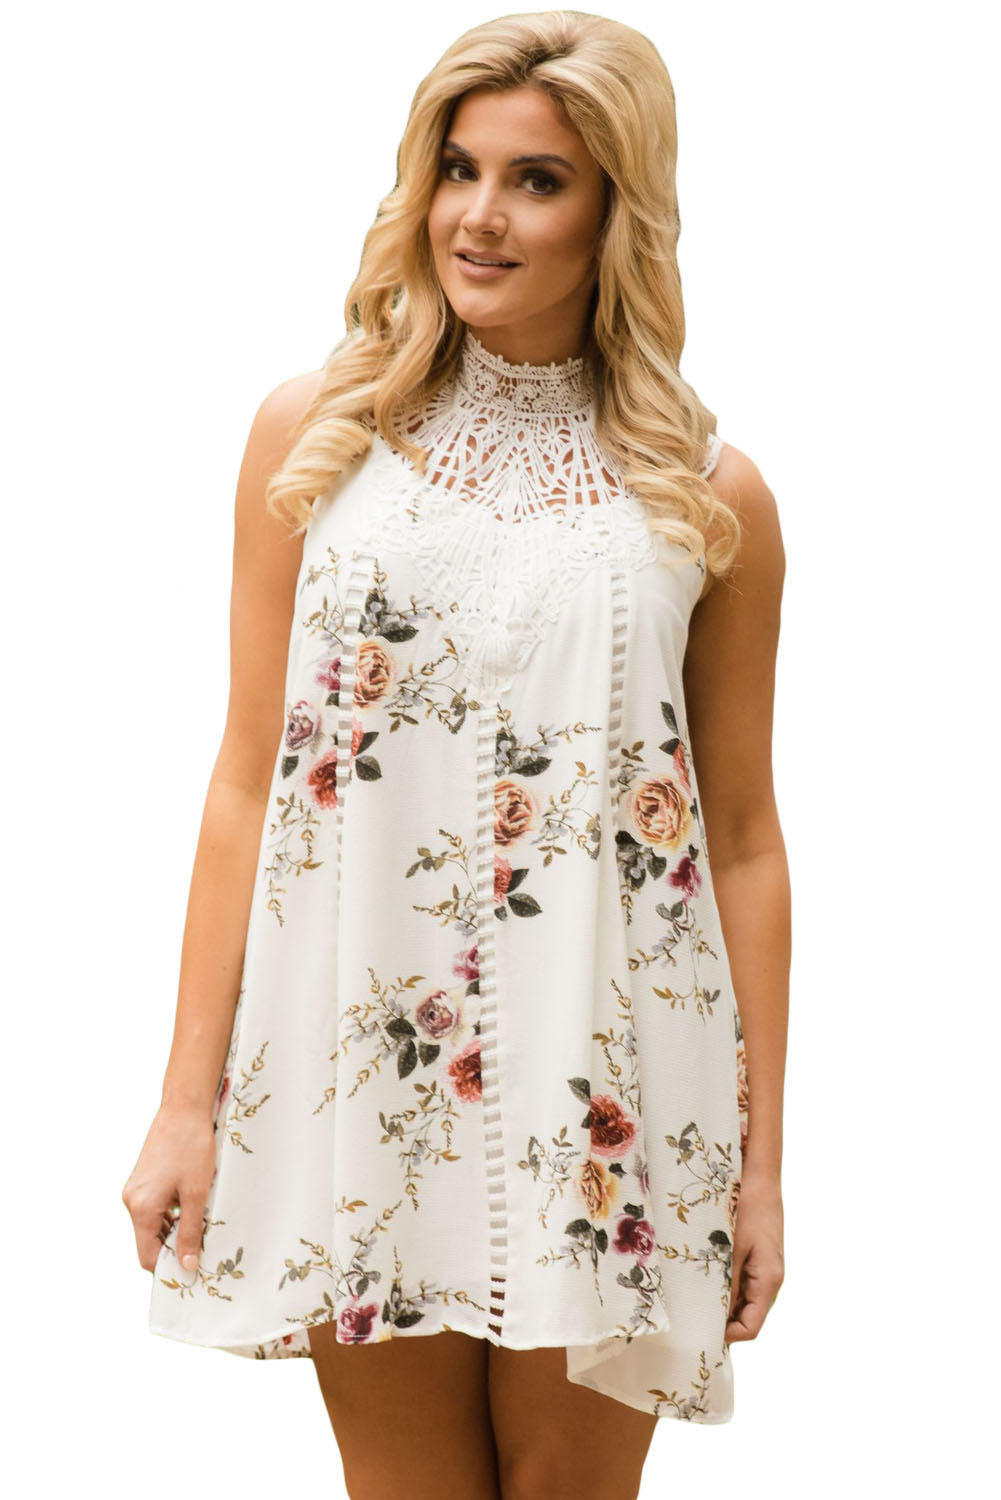 Her Fashion Classy White Crochet Lace Neck Floral Dress